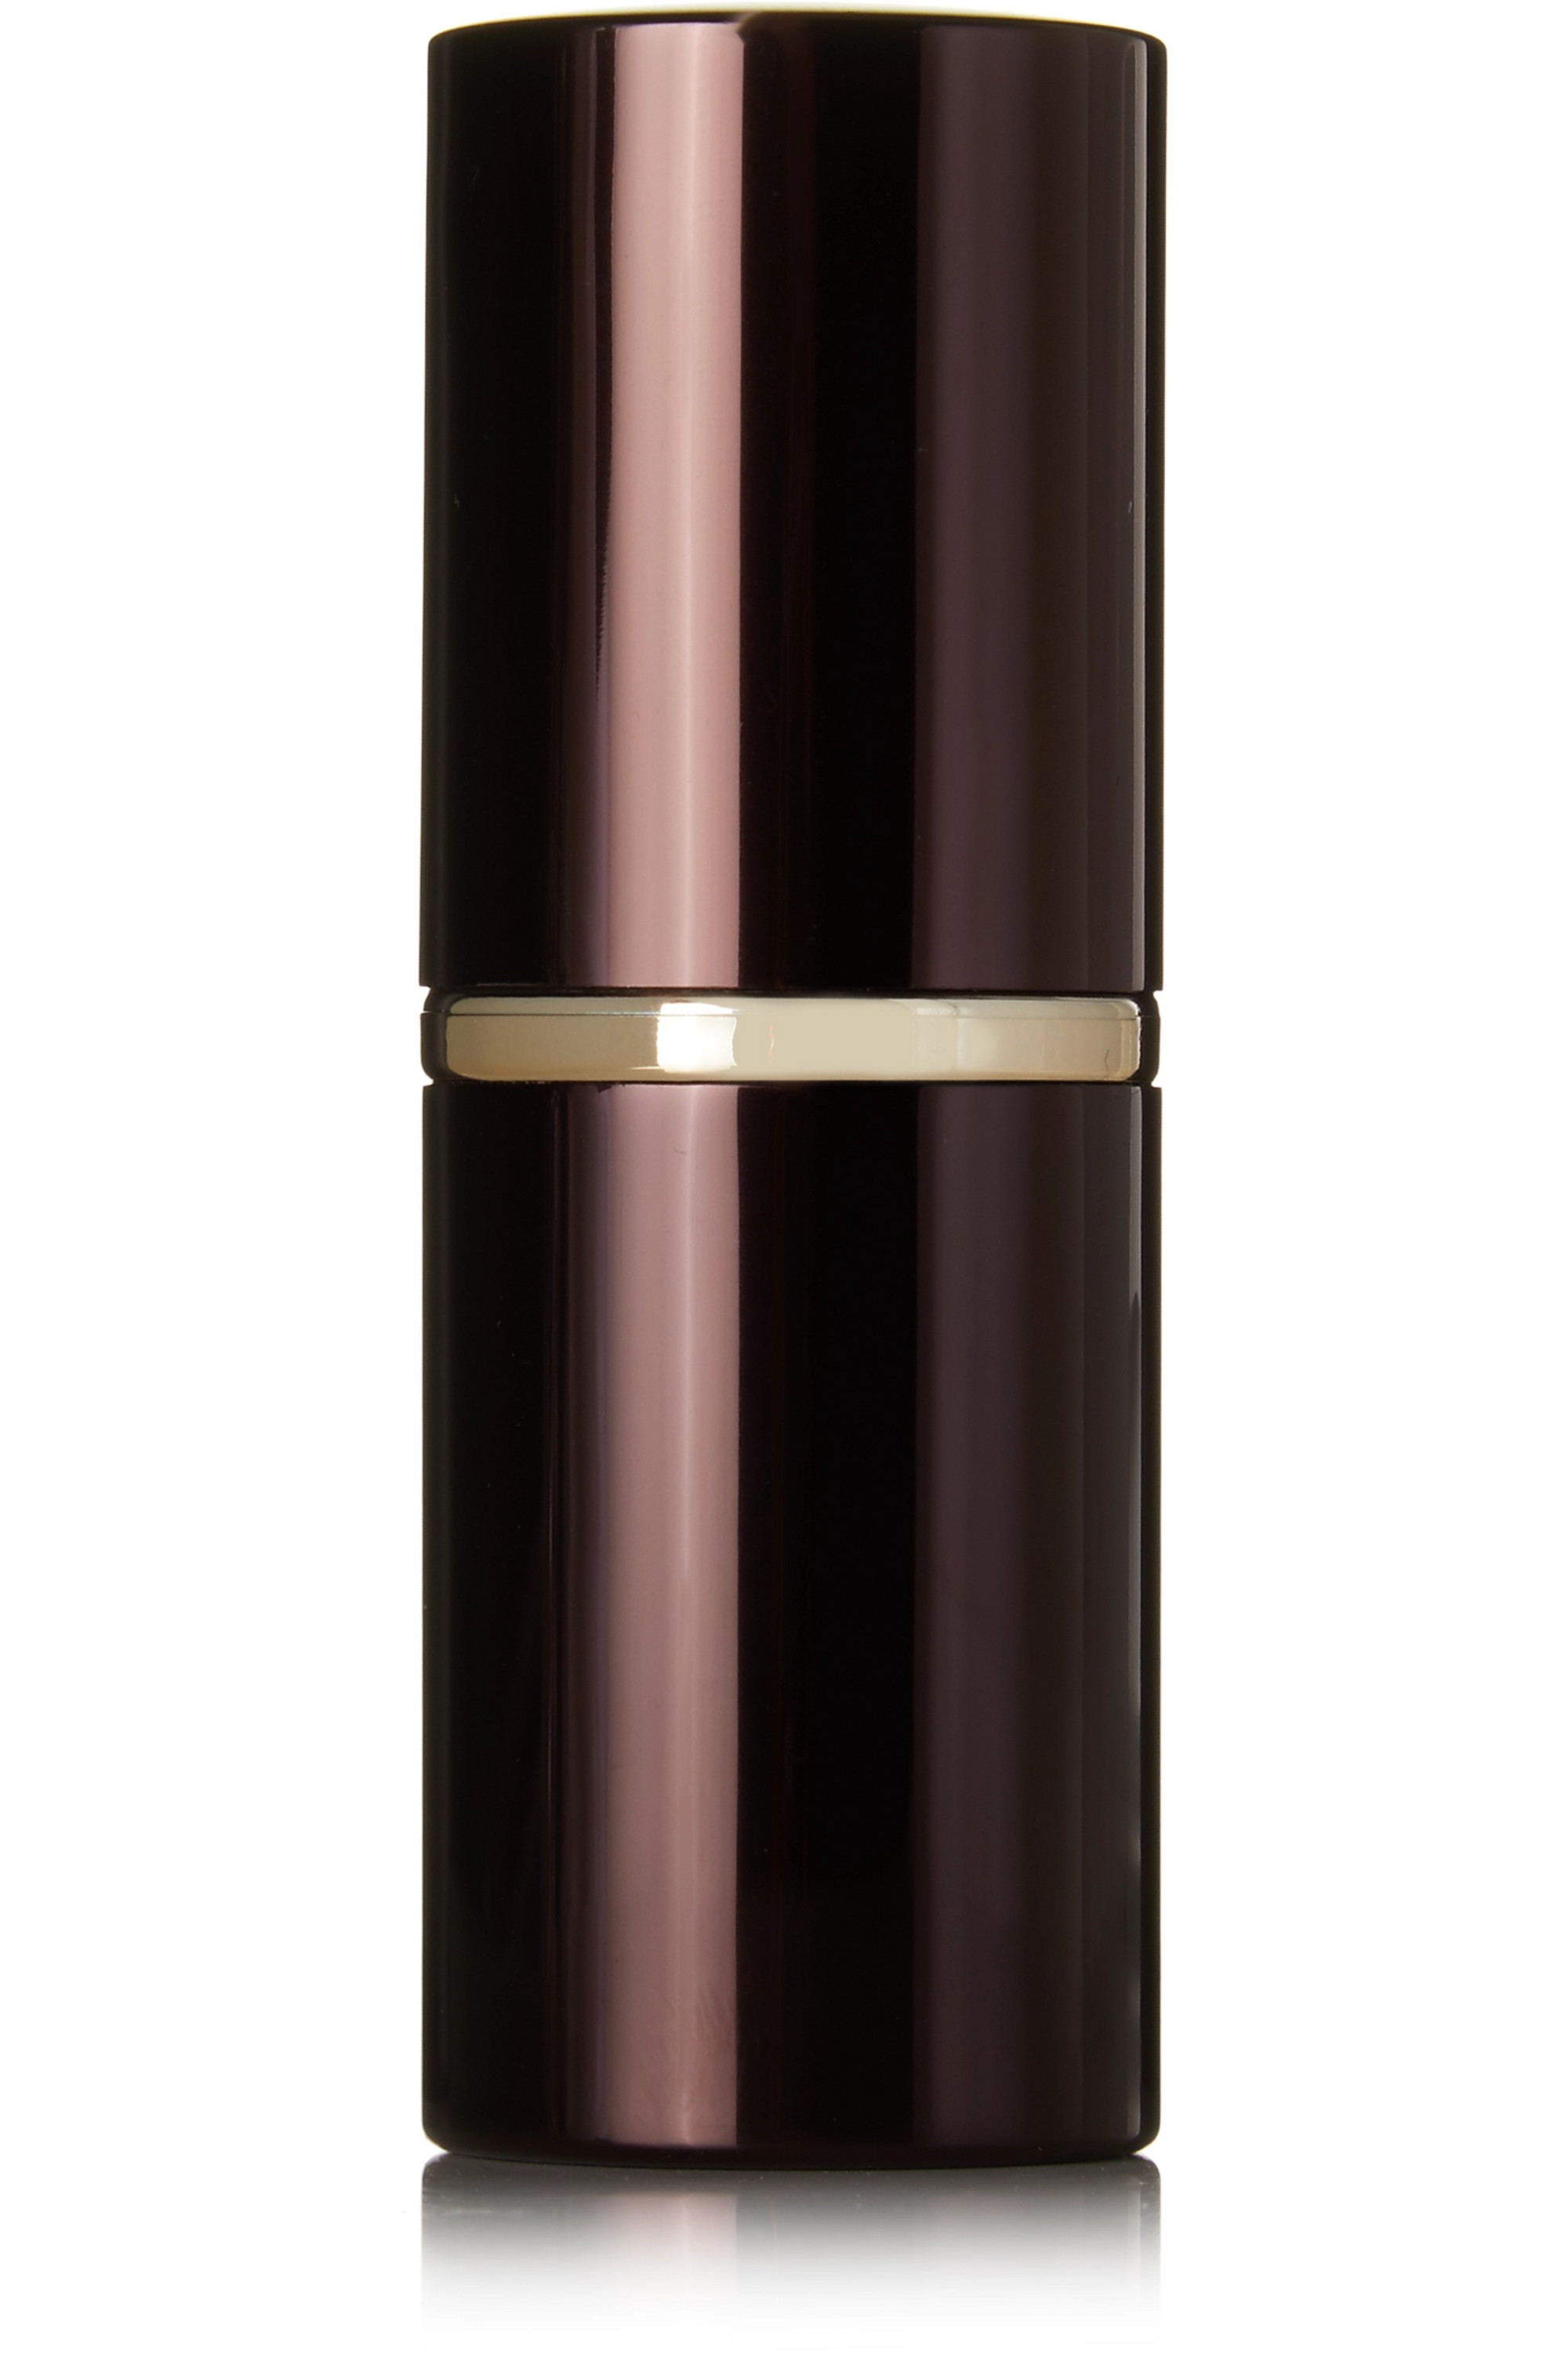 TOM FORD BEAUTY Fond de teint stick Invisible, Honey